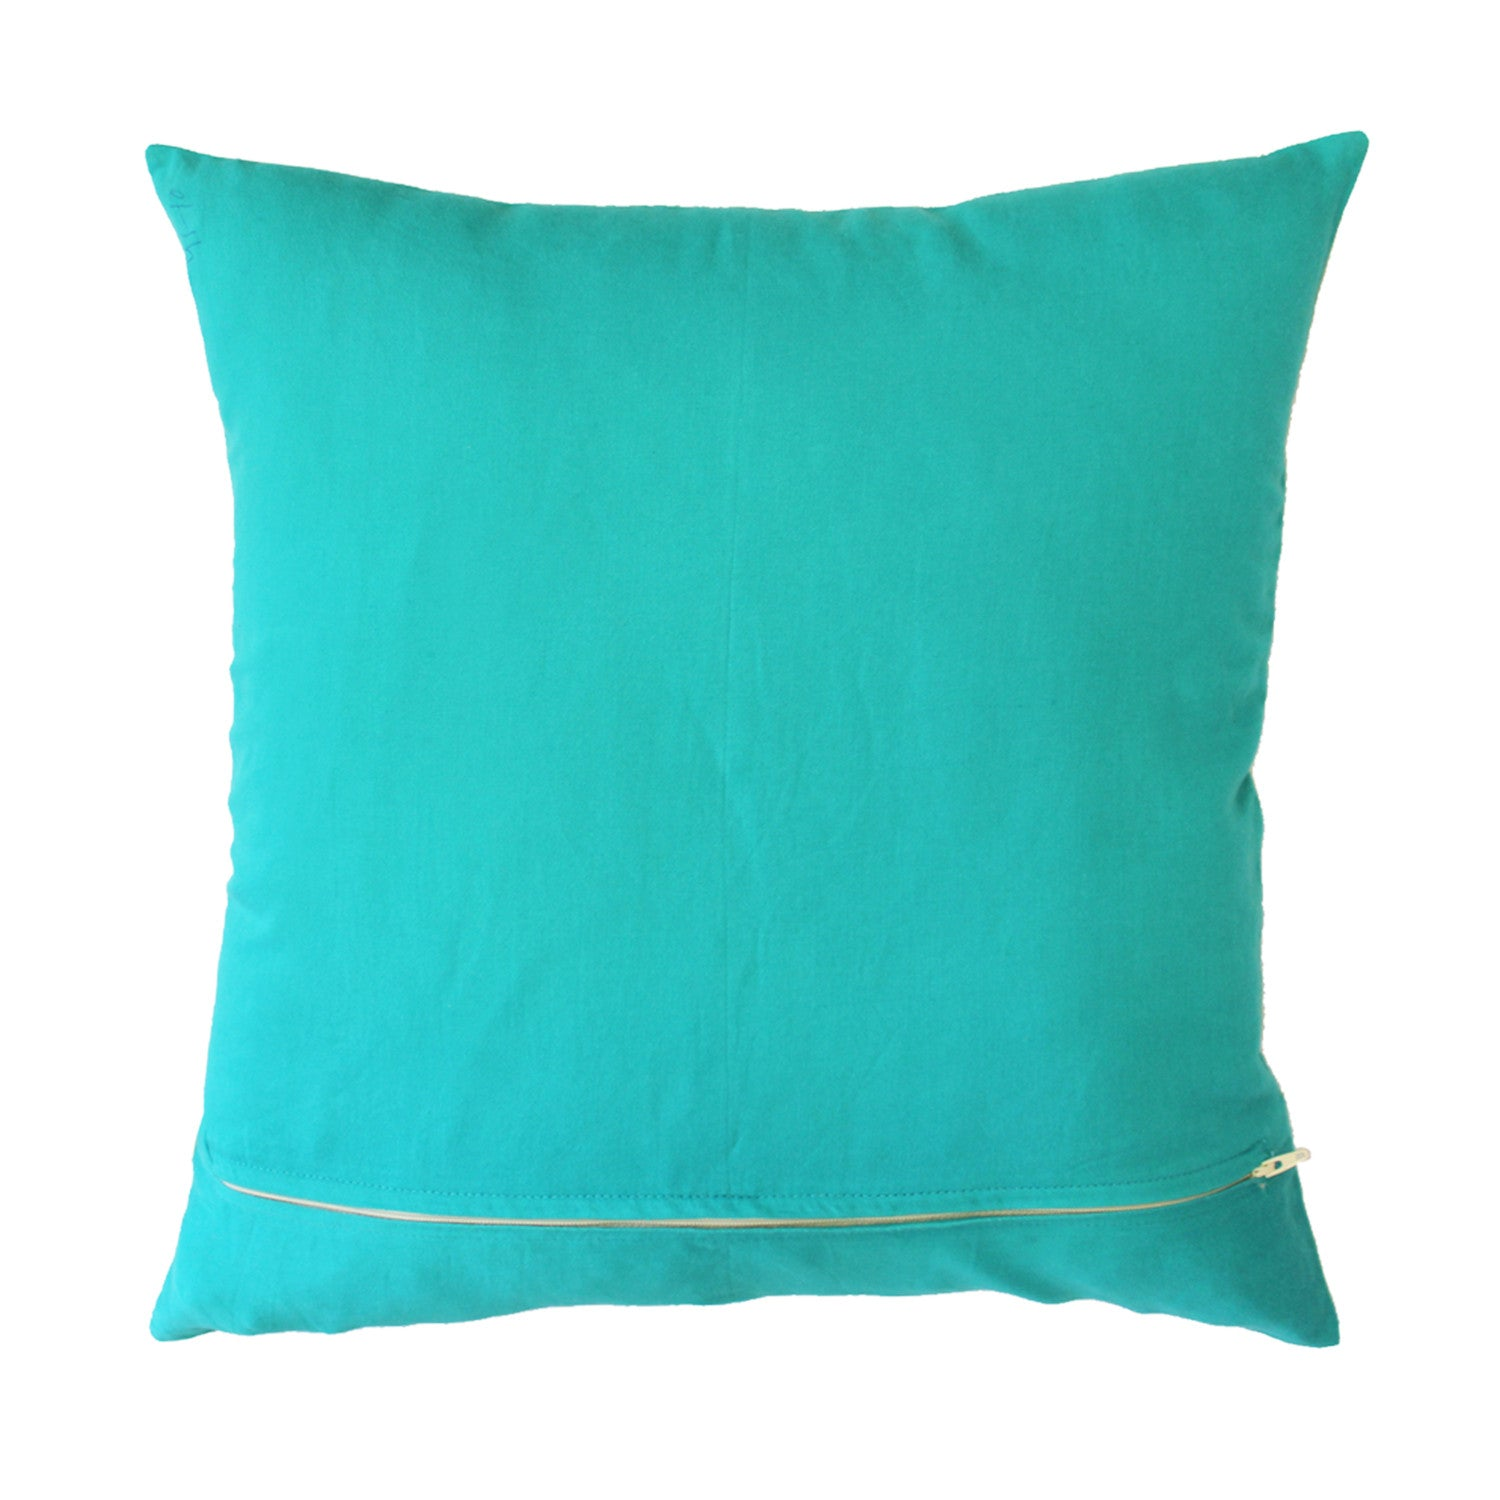 DUSKY CITRON CUSHION COVER